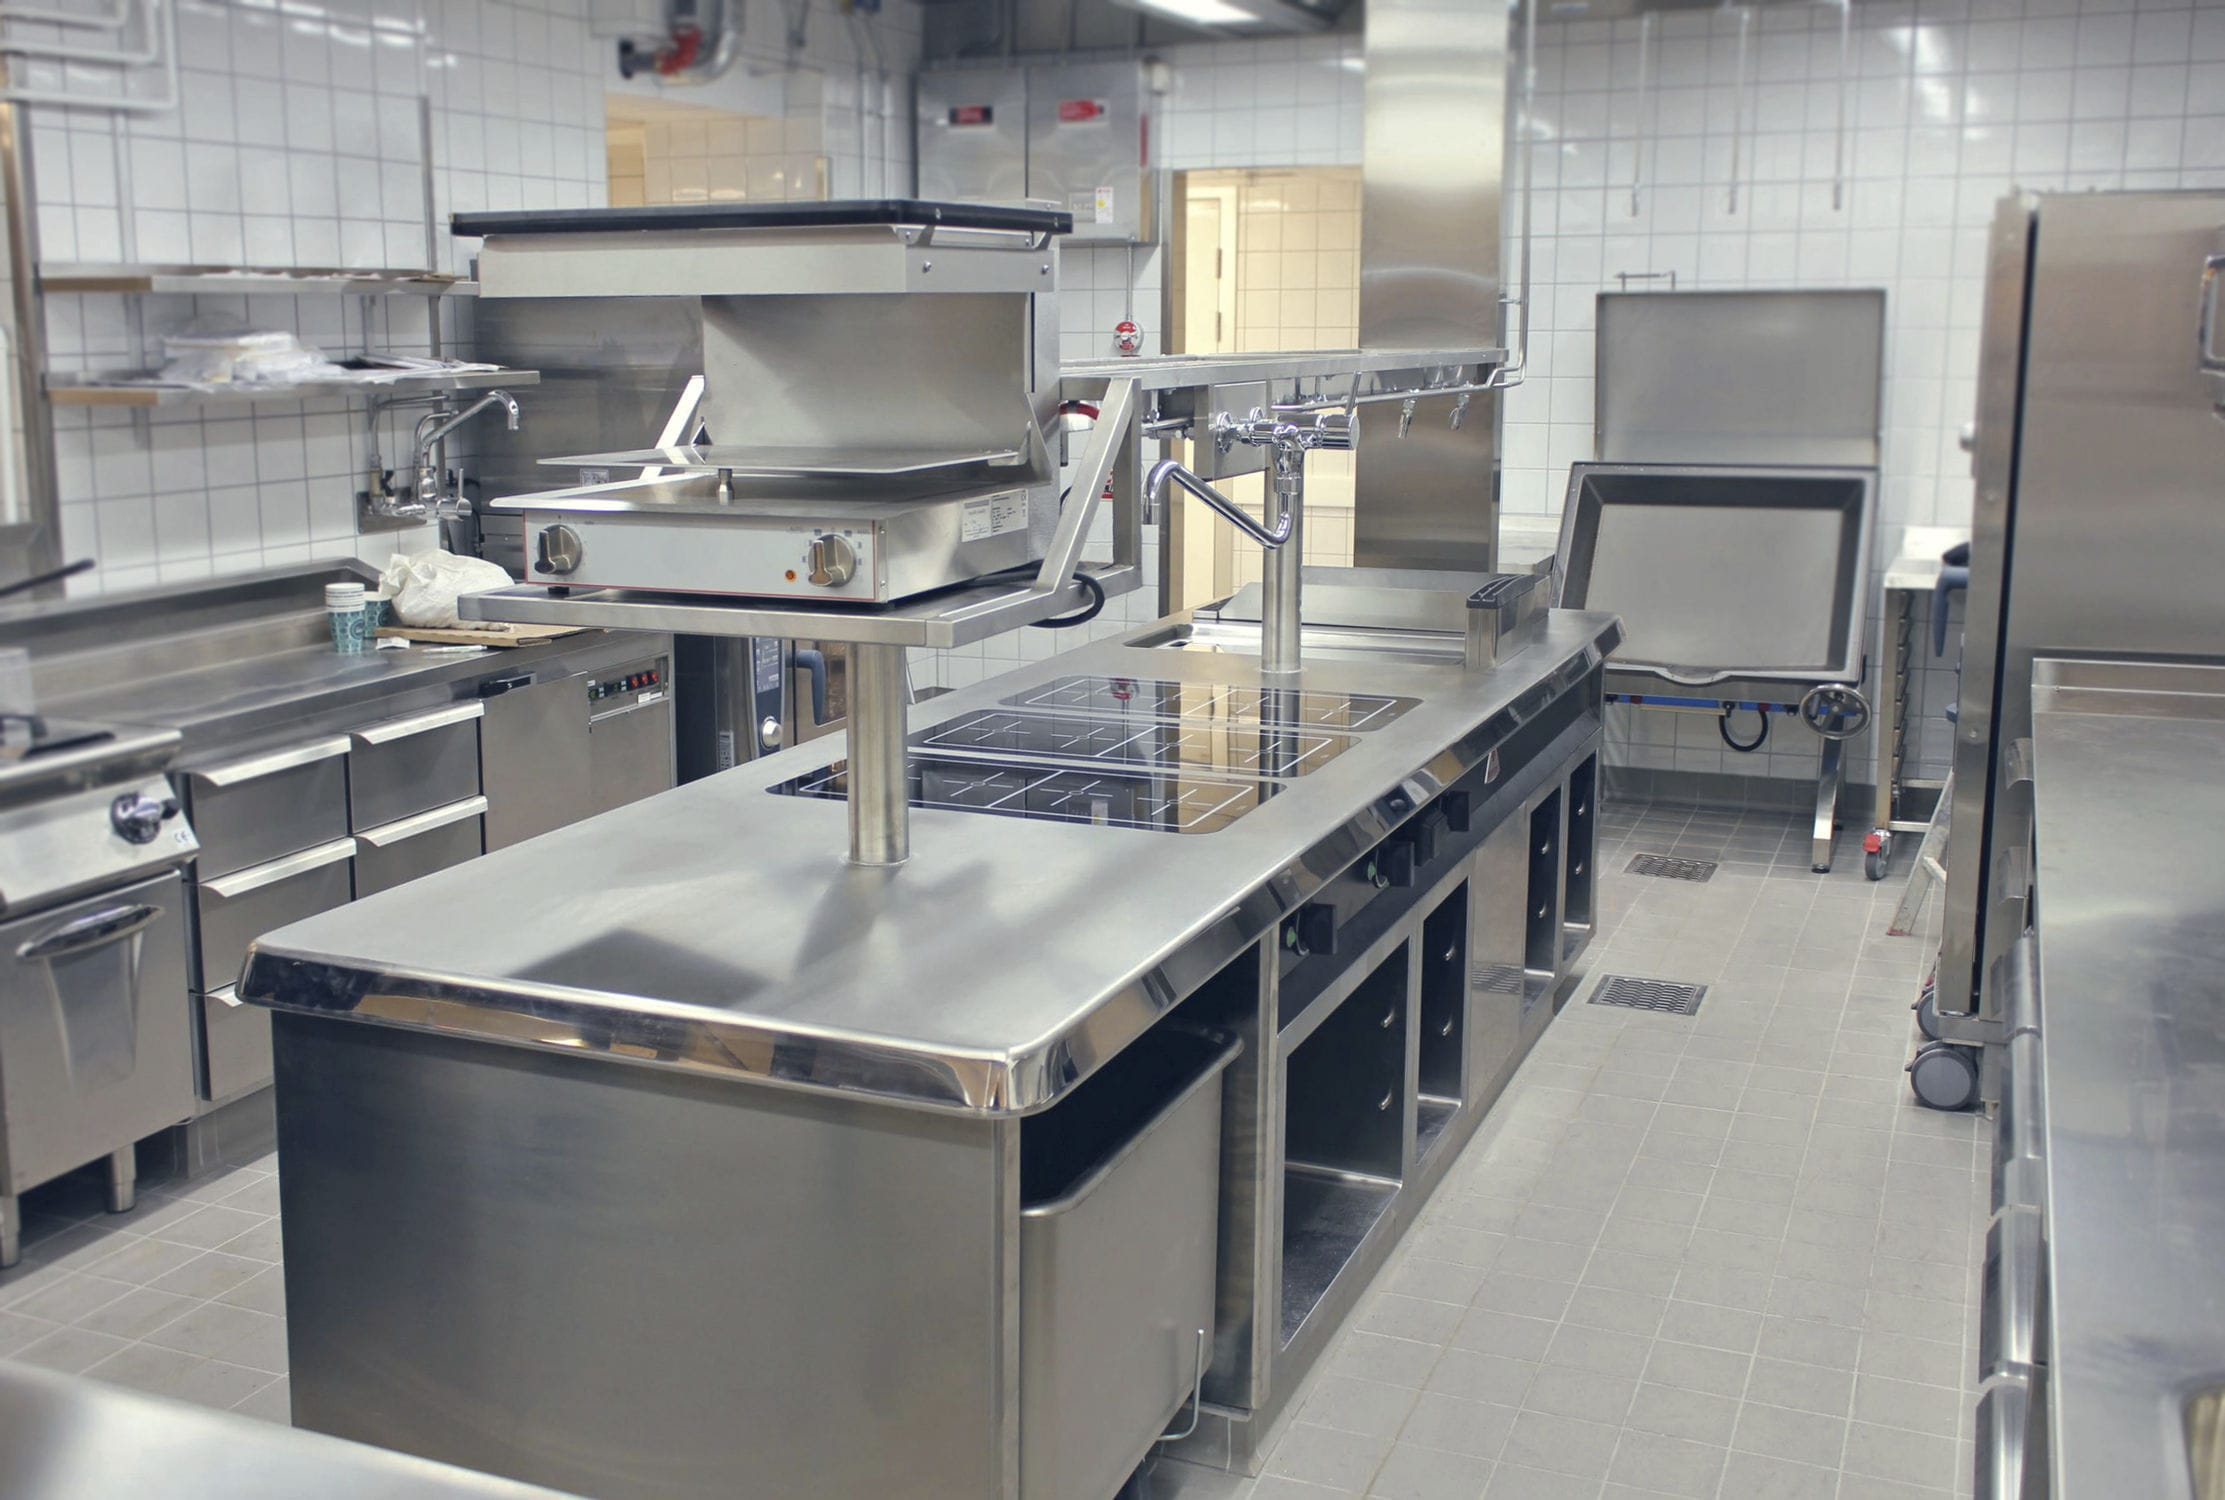 Stainless steel commercial kitchen / modular - Berto\'s S.p.A.